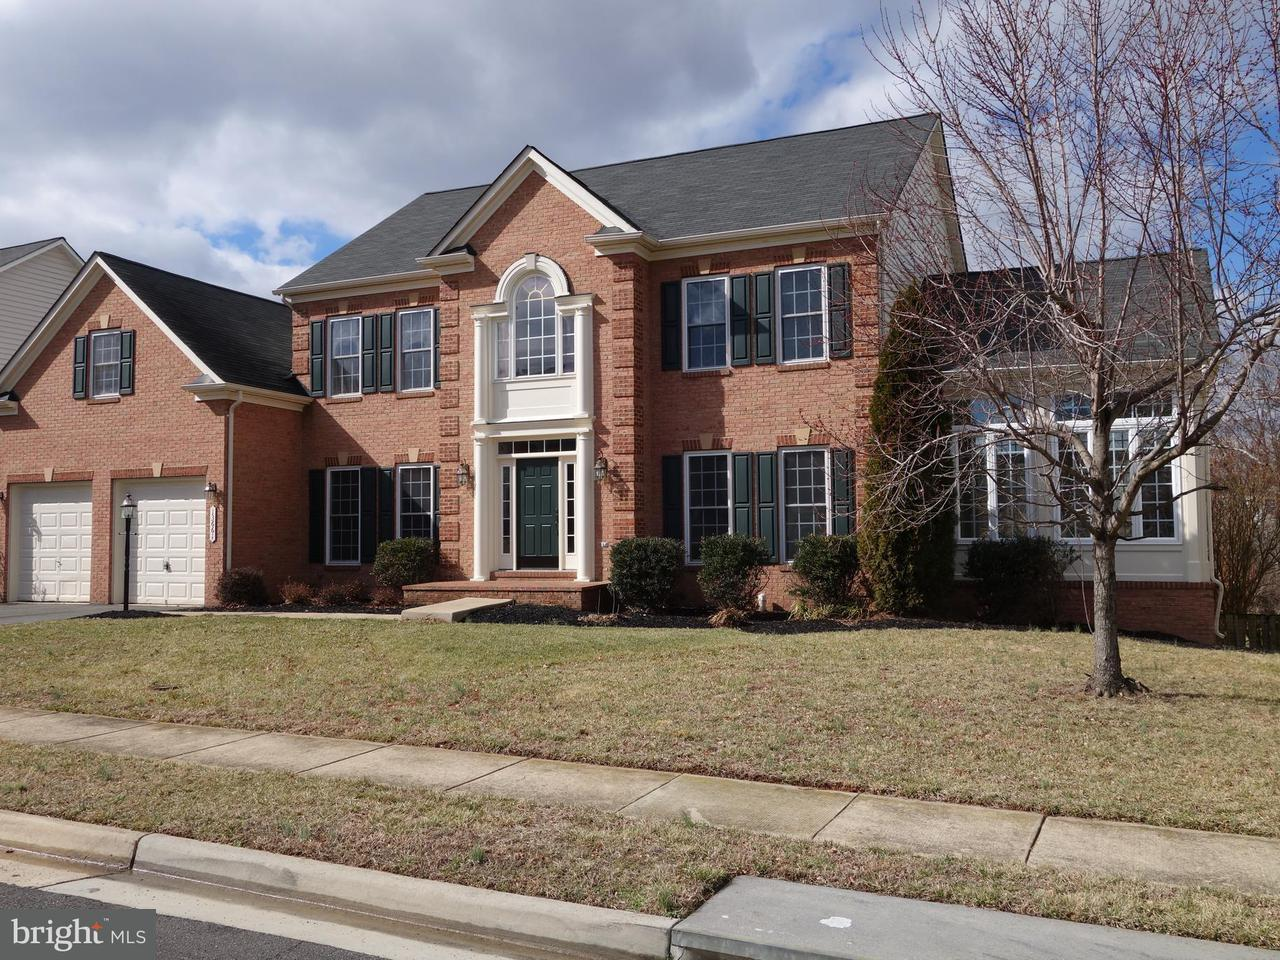 Single Family Home for Sale at 13661 Newtonmore Place 13661 Newtonmore Place Bristow, Virginia 20136 United States